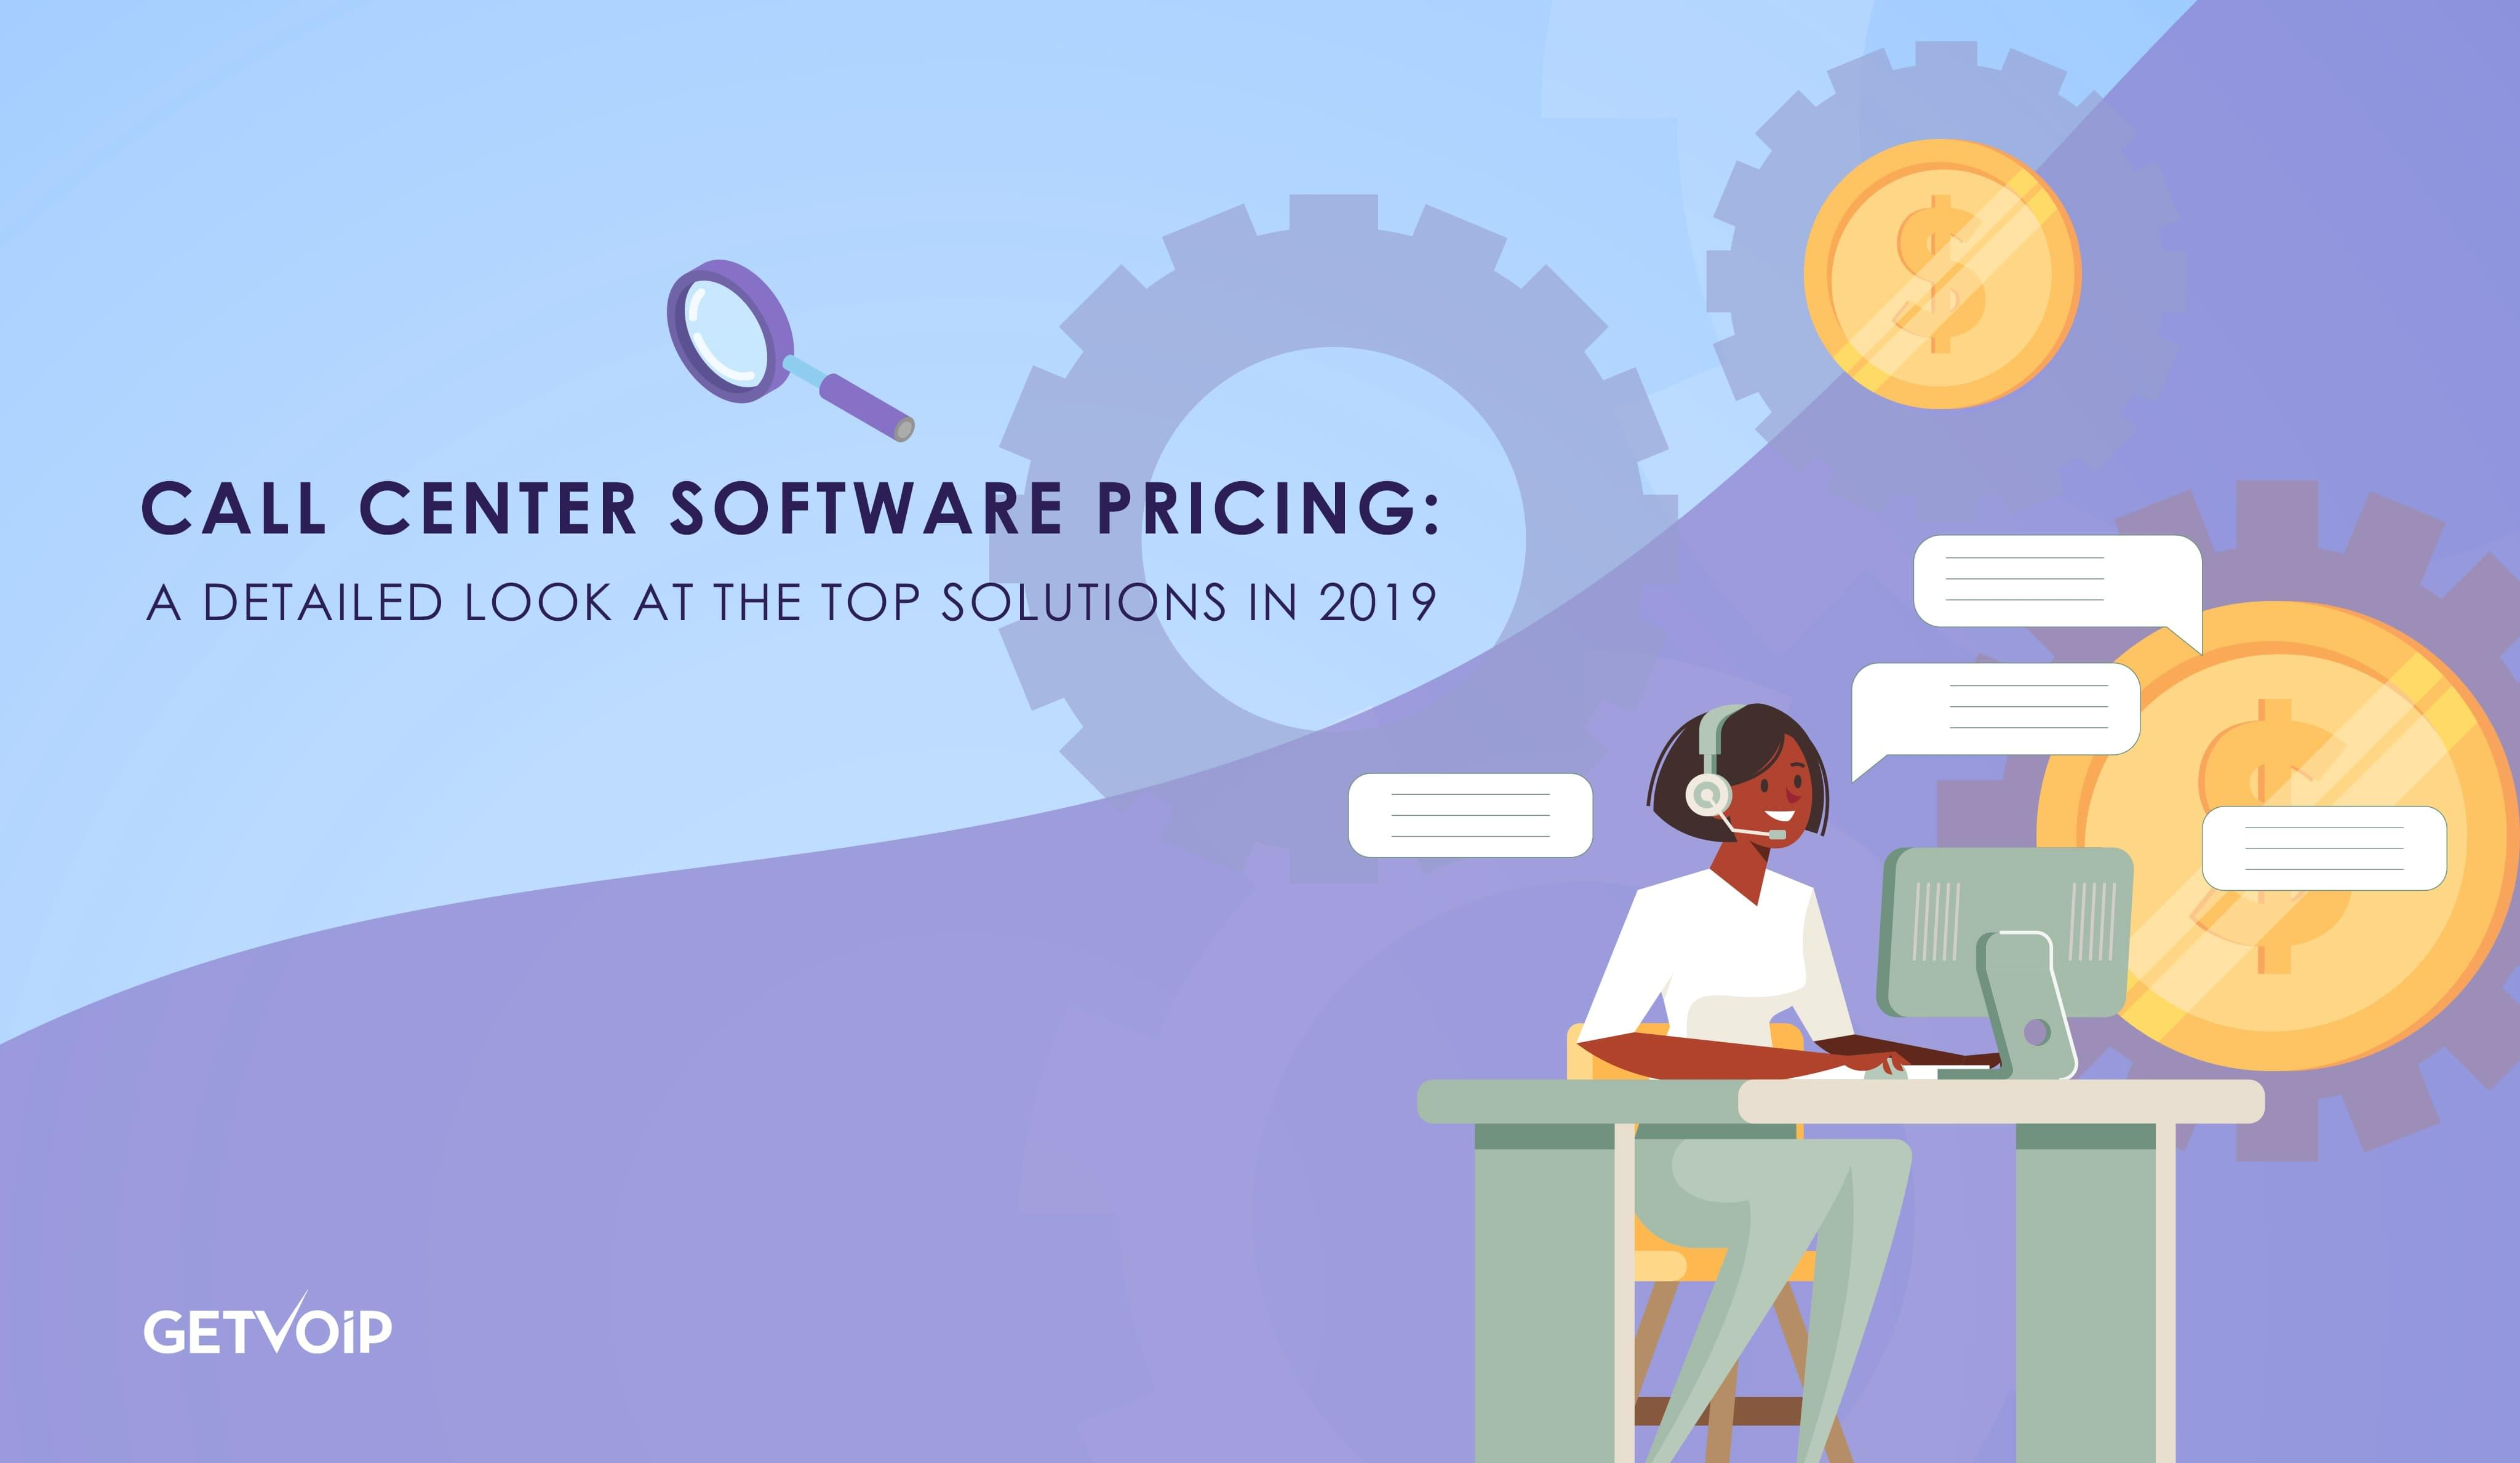 Call Center Software Pricing 2020: A Detailed Look at Top Solutions